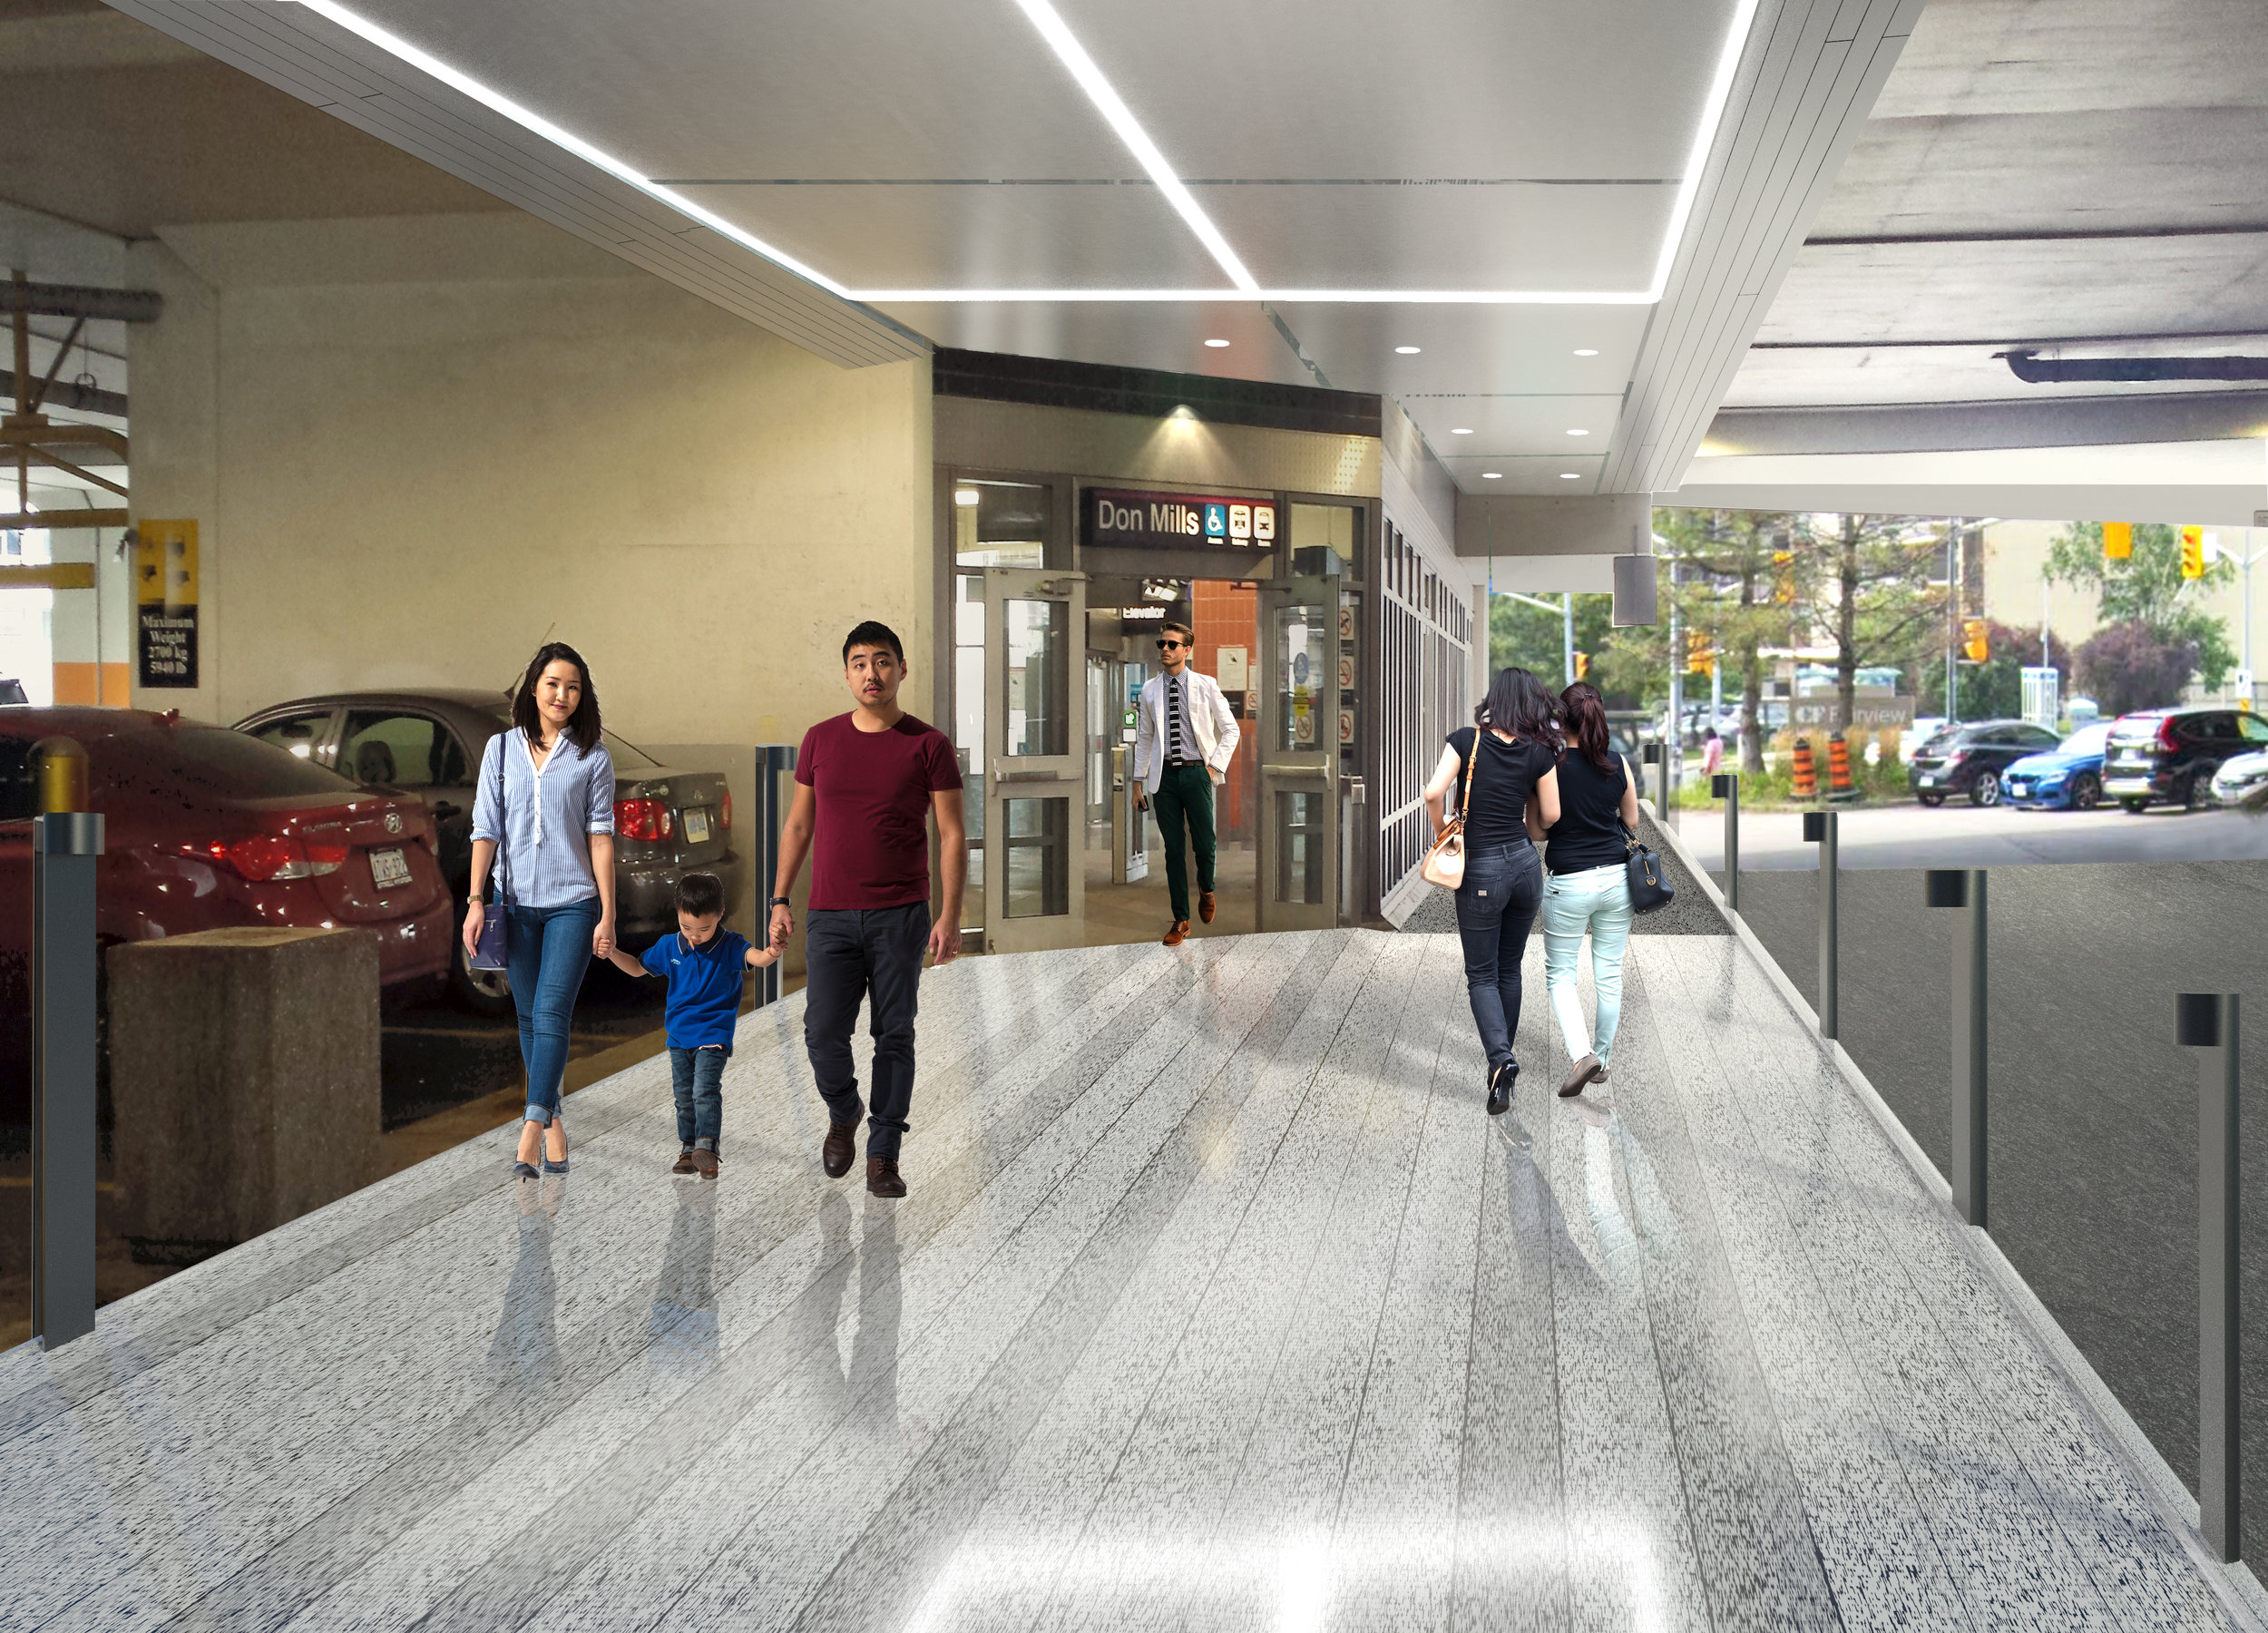 PROPOSED ENTRANCE FROM DON MILLS STATION RENDERING: CADILLAC FAIRVIEW